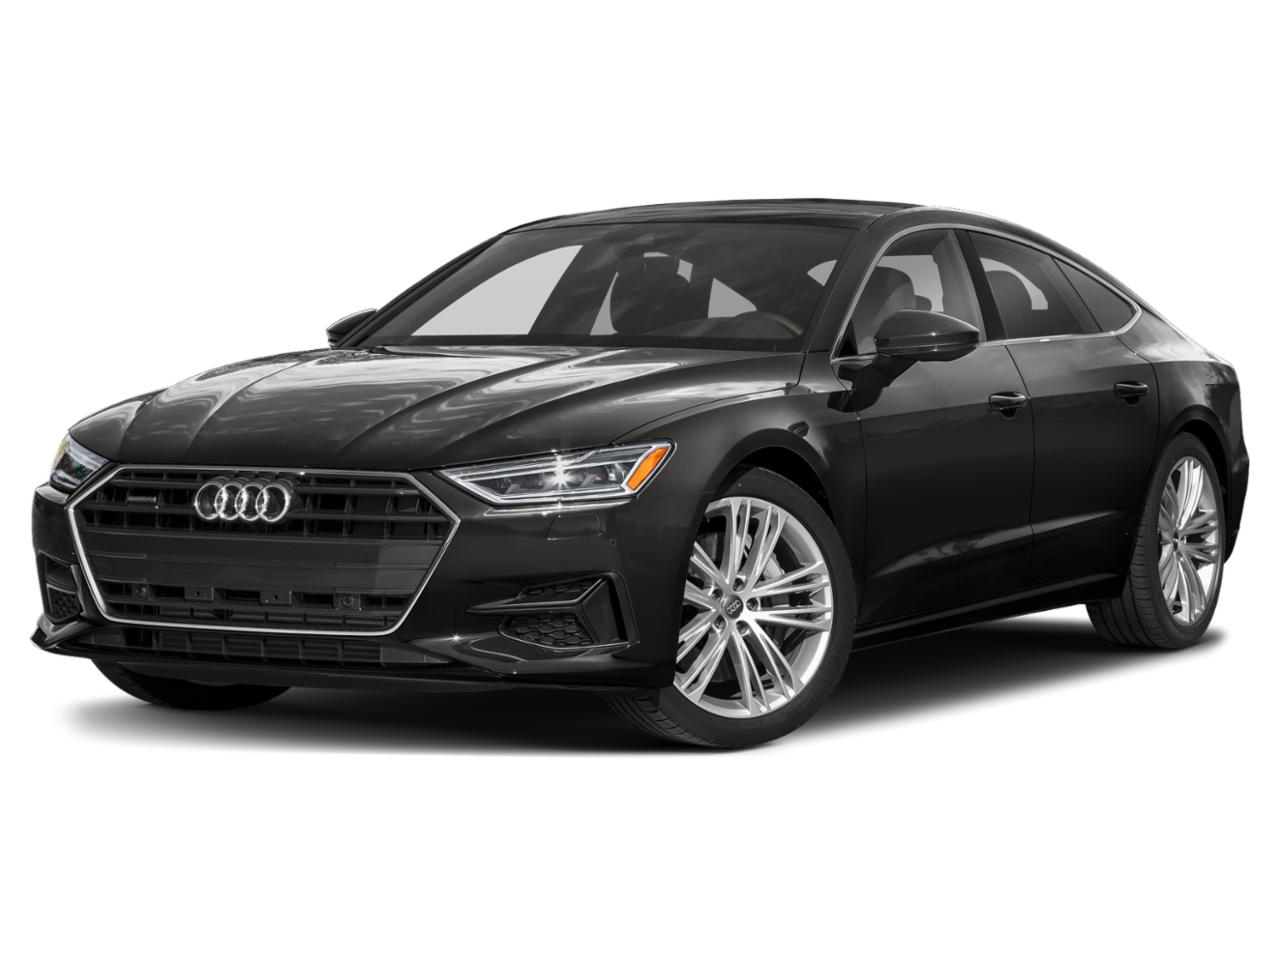 2021 Audi A7 Vehicle Photo in TALLAHASSEE, FL 32308